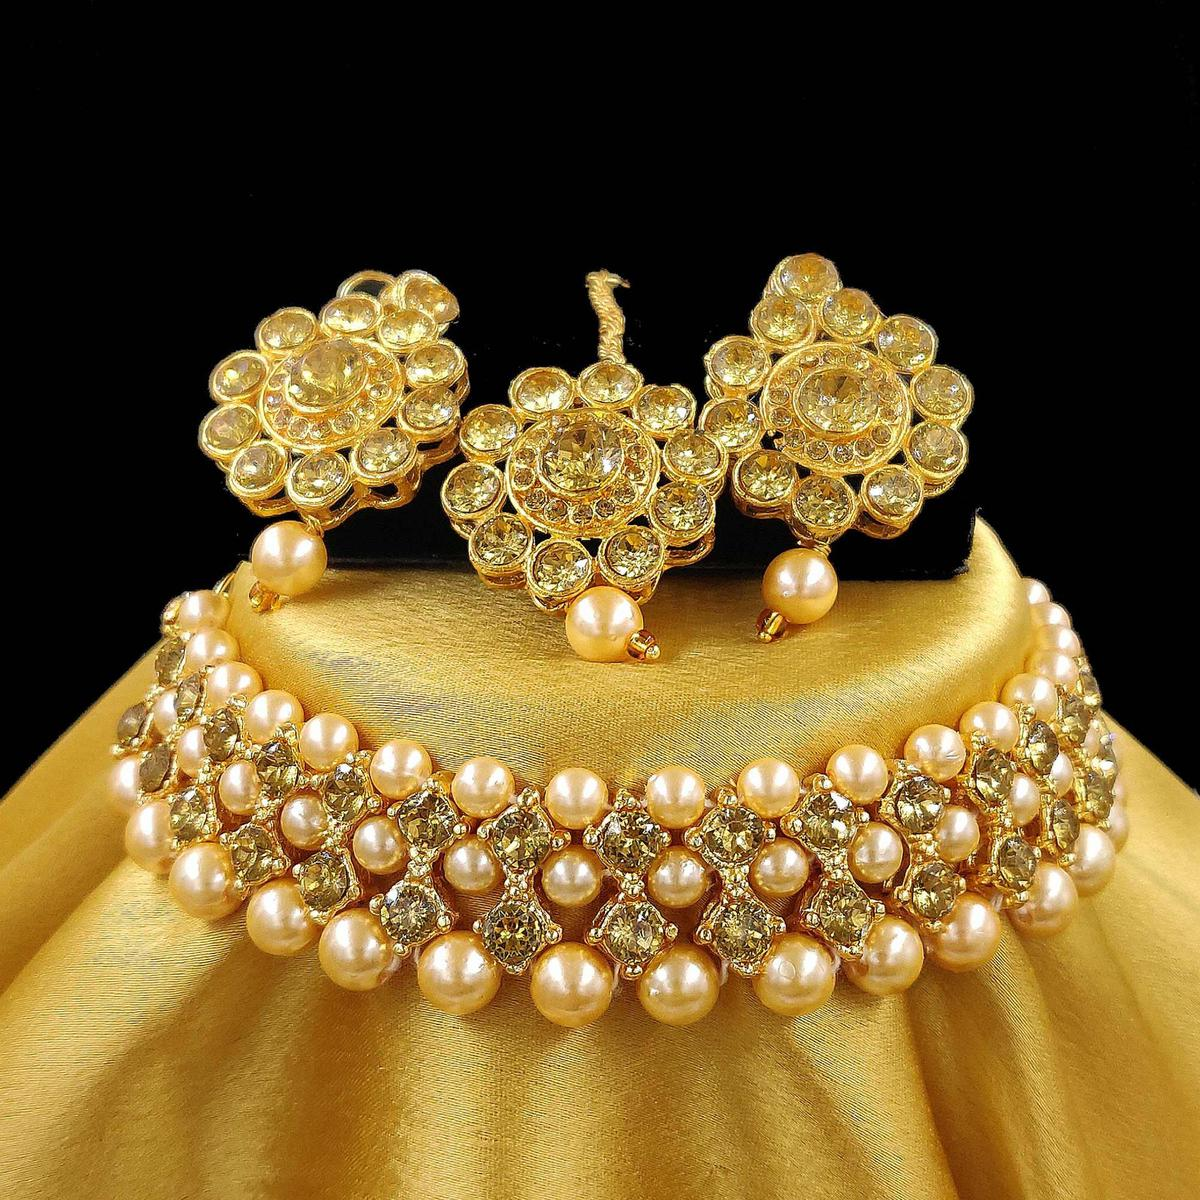 ZaffreCollections - Gold Choker set for Women and Girls